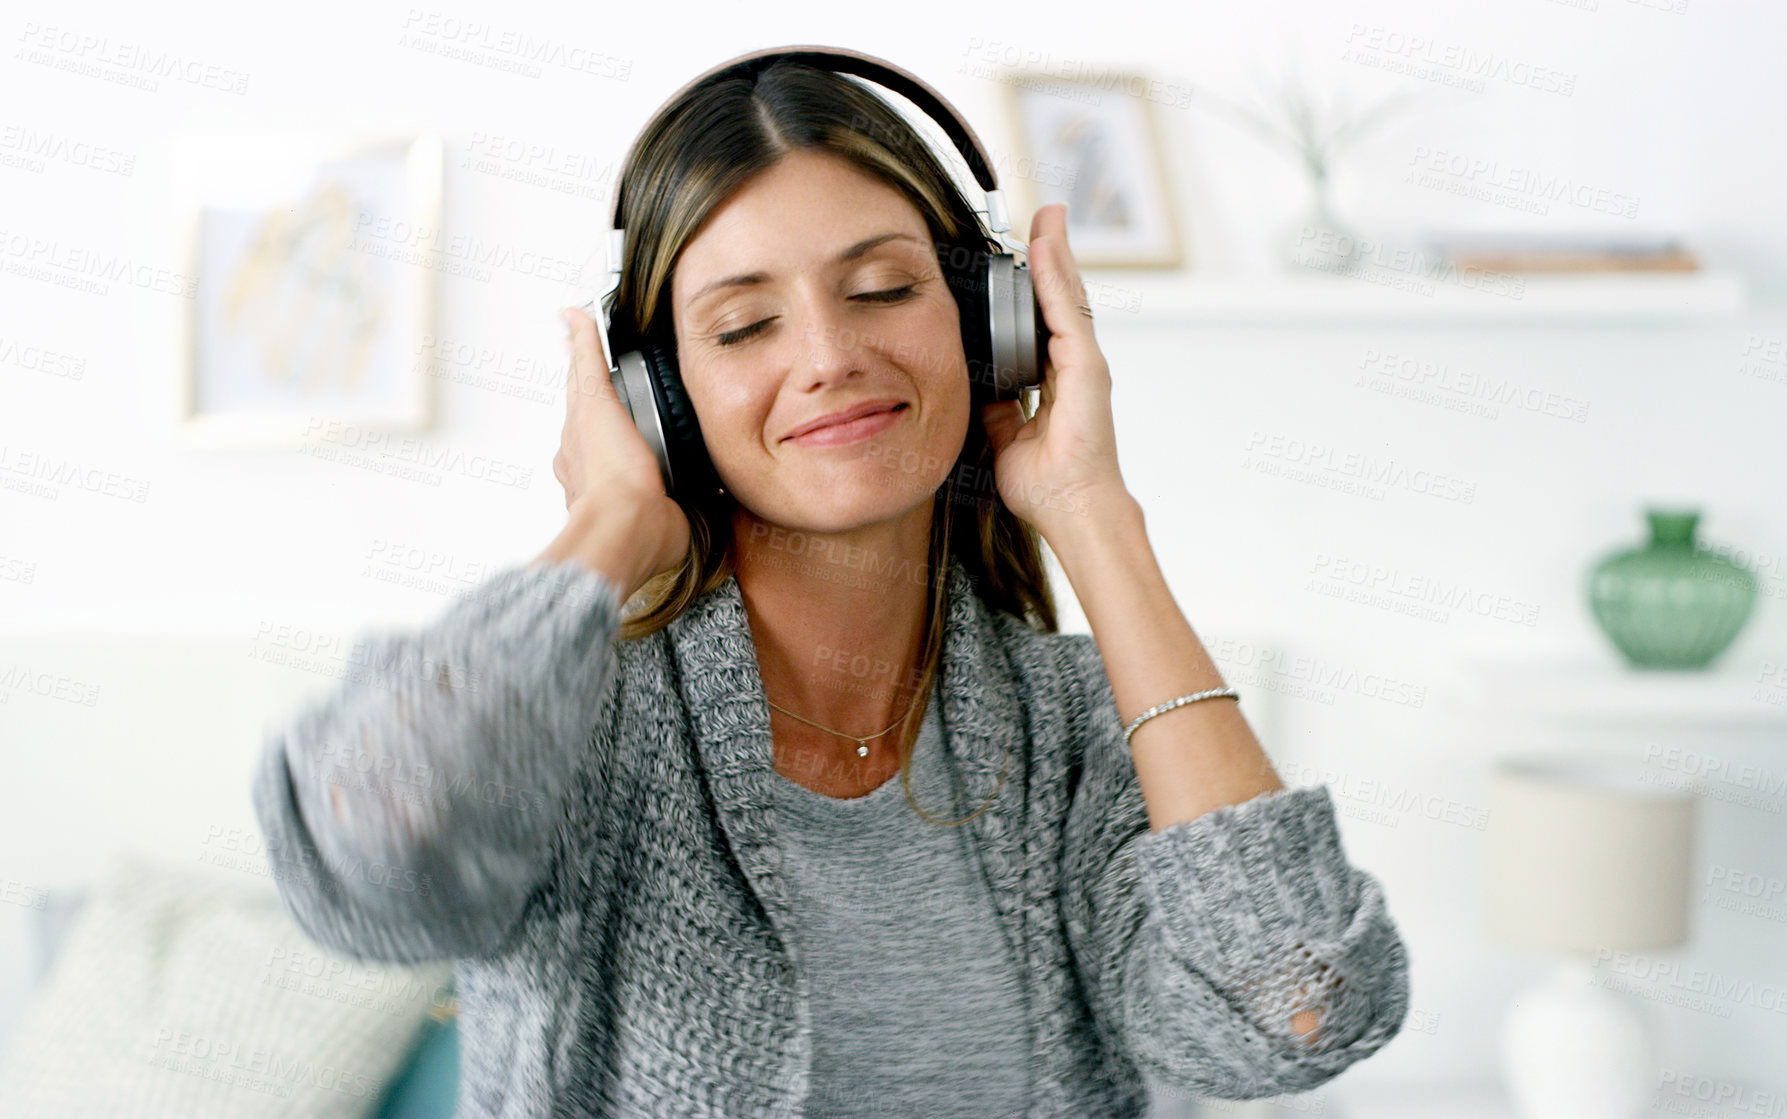 Buy stock photo Shot of a woman listening to music while relaxing at home